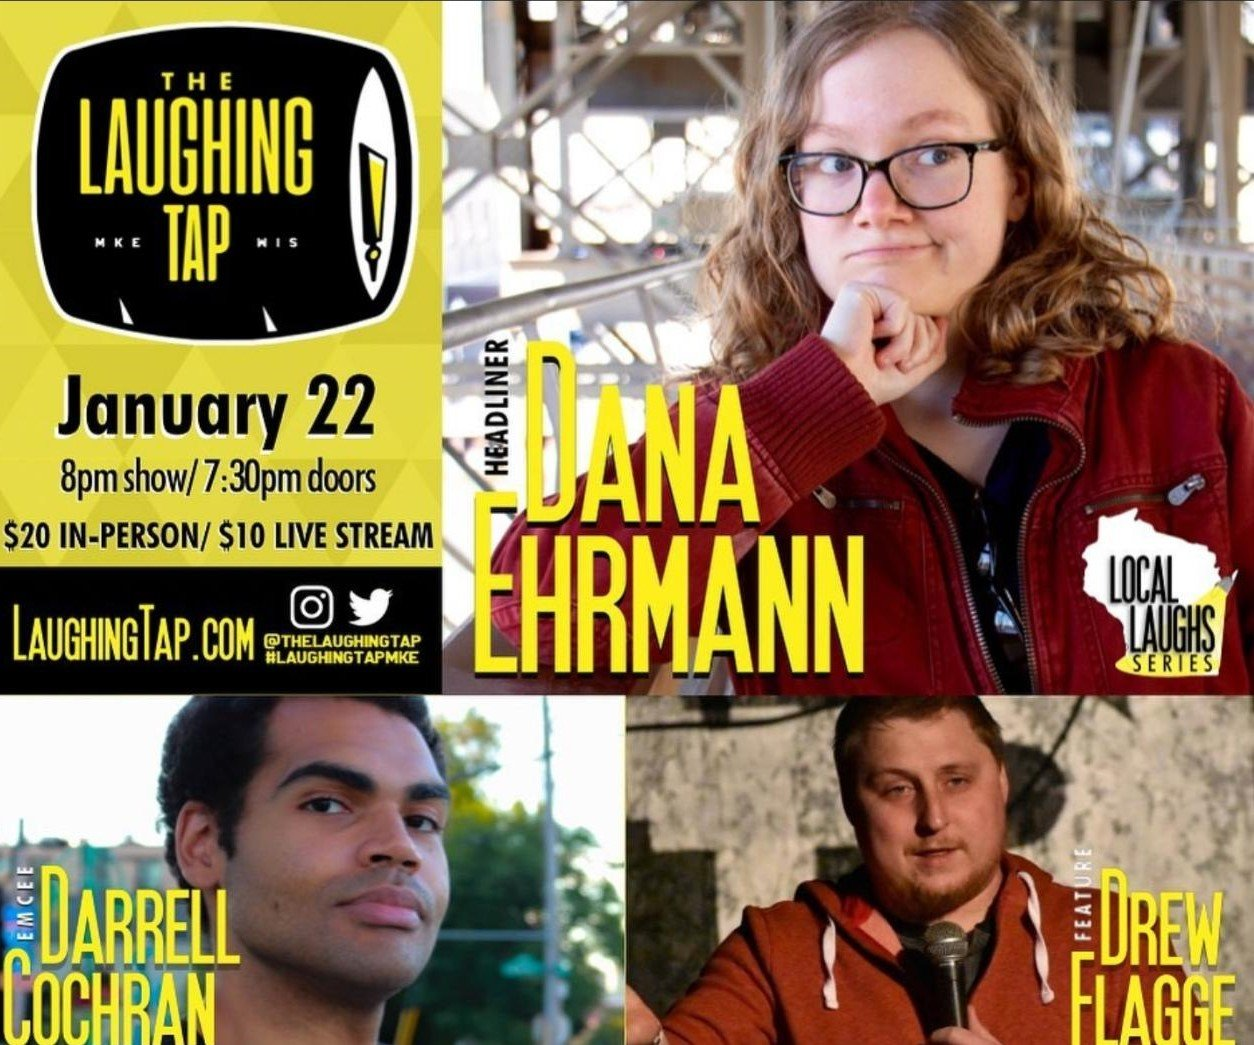 Performing on Friday<br>@ The Laughing Tap<br>706 S 5th St, Milwaukee, WI<br>Show starts at 8pm